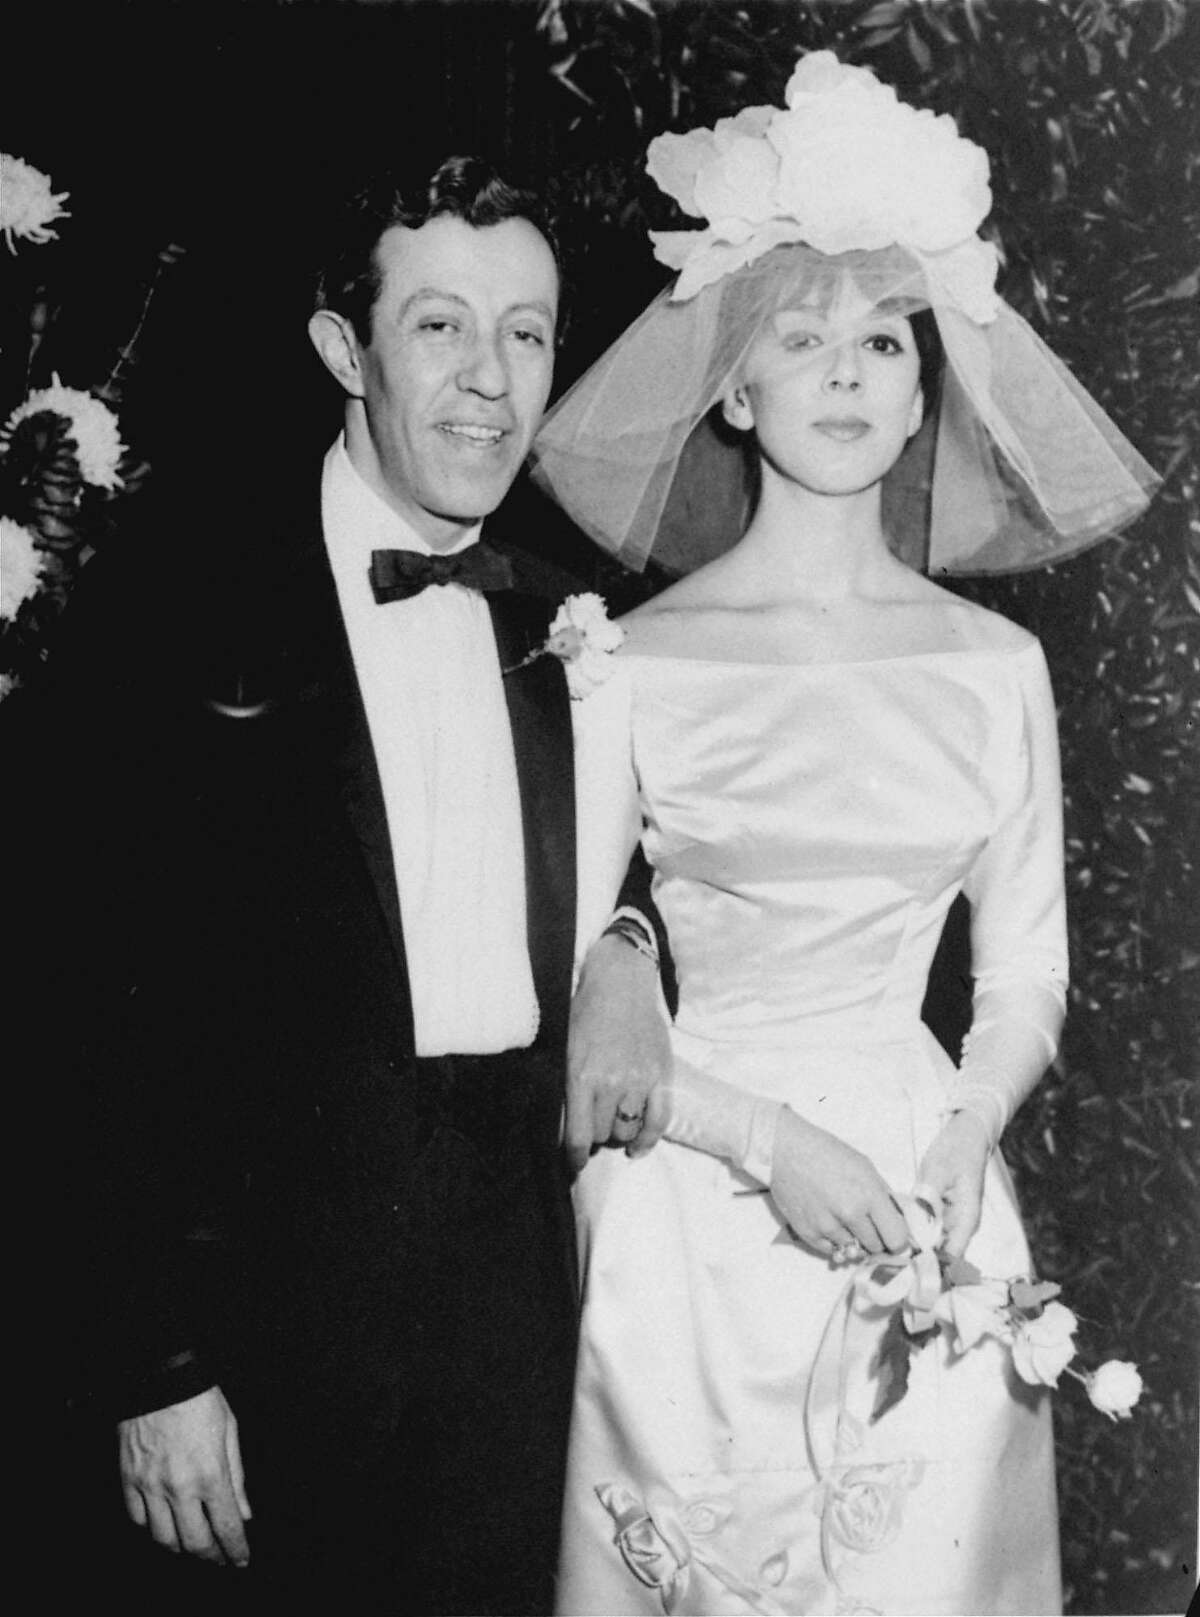 ** FILE ** Broadway playwright Adolph Green and his bride, 26 year old actress Phyllis Newman, are shown after their wedding in this Jan. 31, 1960 file photo in New York. Green, a lyricist whose six-decade collaboration with Betty Comden helped create such joyous stage celebrations of New York as